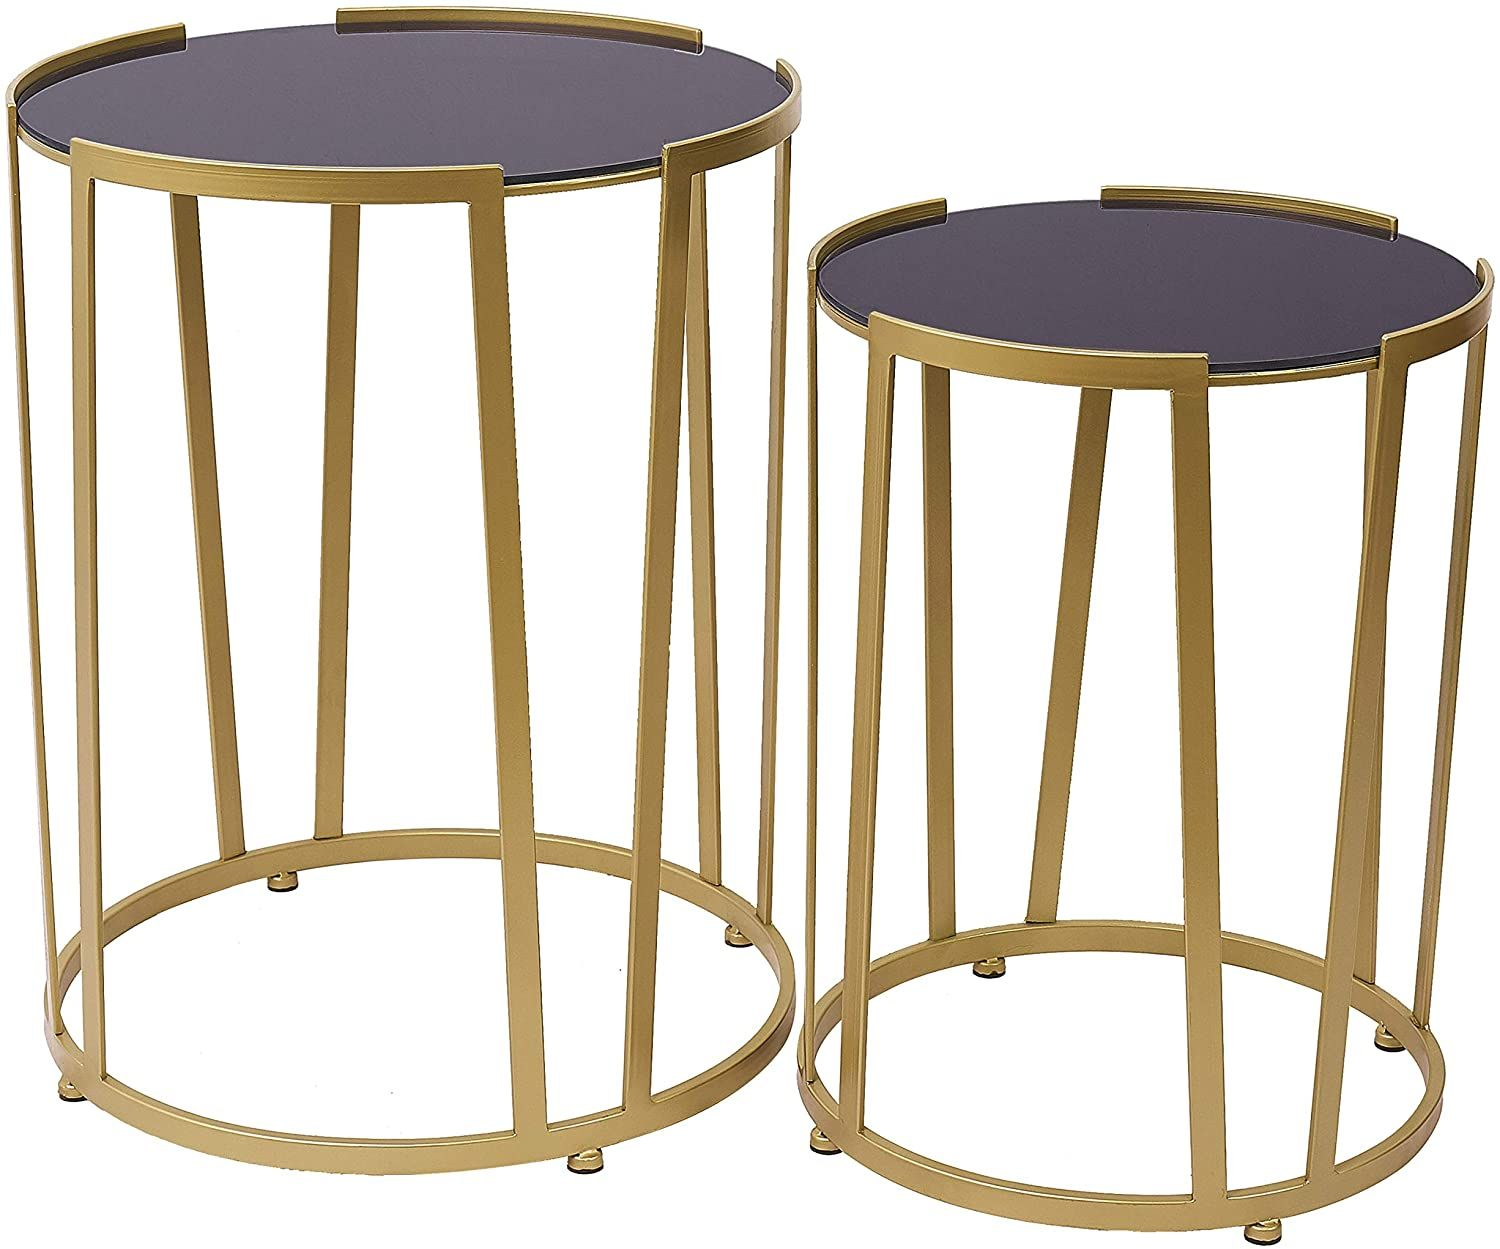 End Table Sofa Side Table Set Of 2 Nesting Coffee Table With Gold Metal Body Black Glass Top In 2020 Gold Coffee Table Nesting Coffee Tables Side Table [ 1249 x 1500 Pixel ]